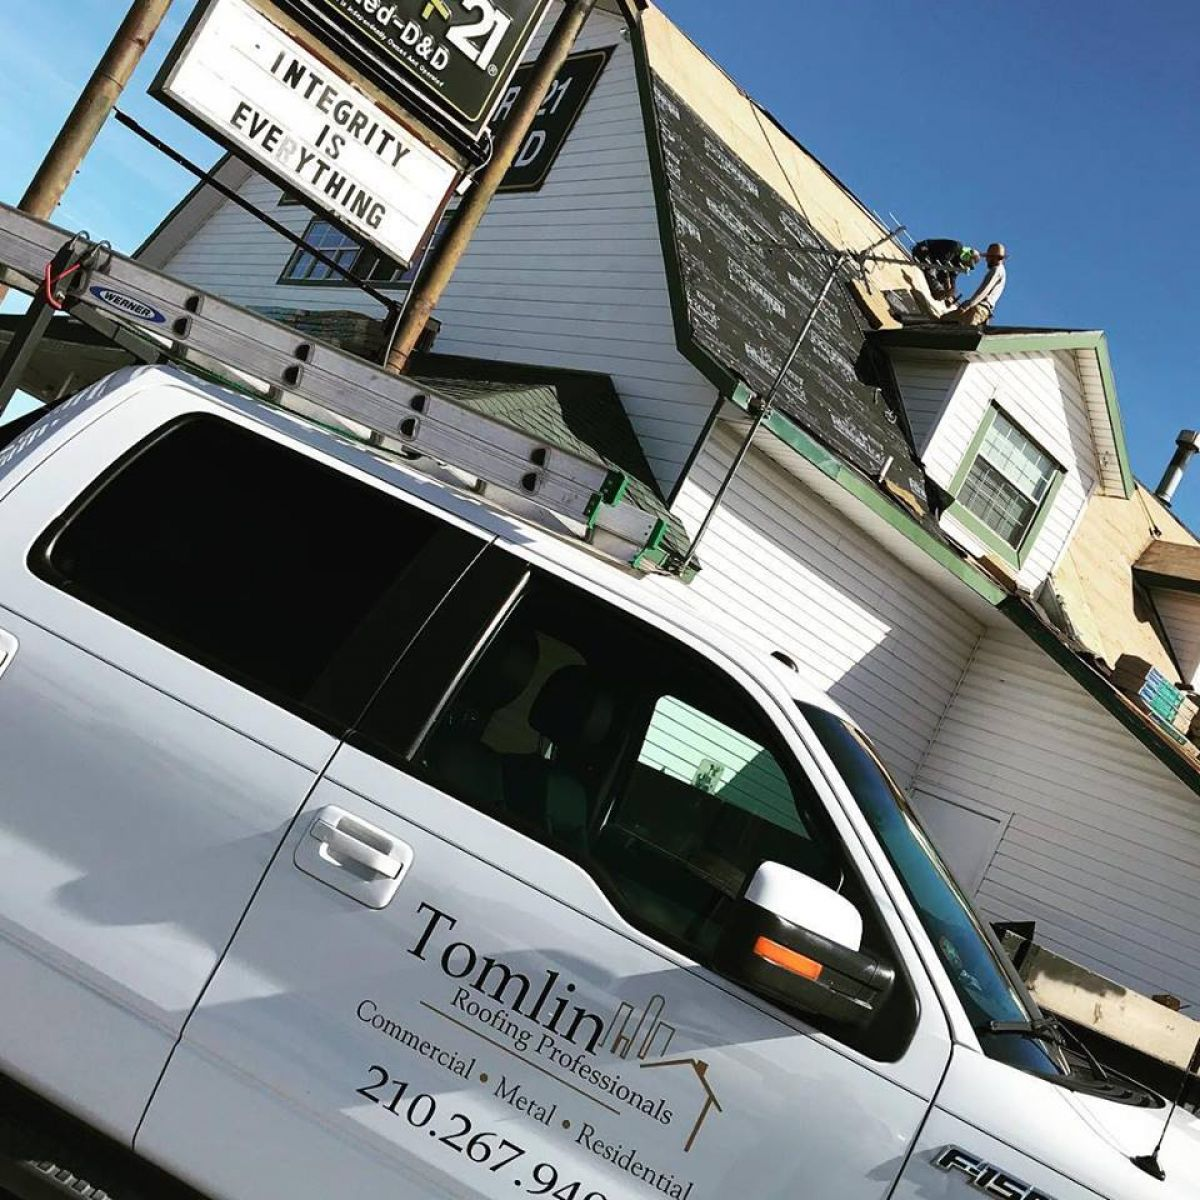 California Landmark Group Completes Westside Apartments: Tomlin Roofing Professionals